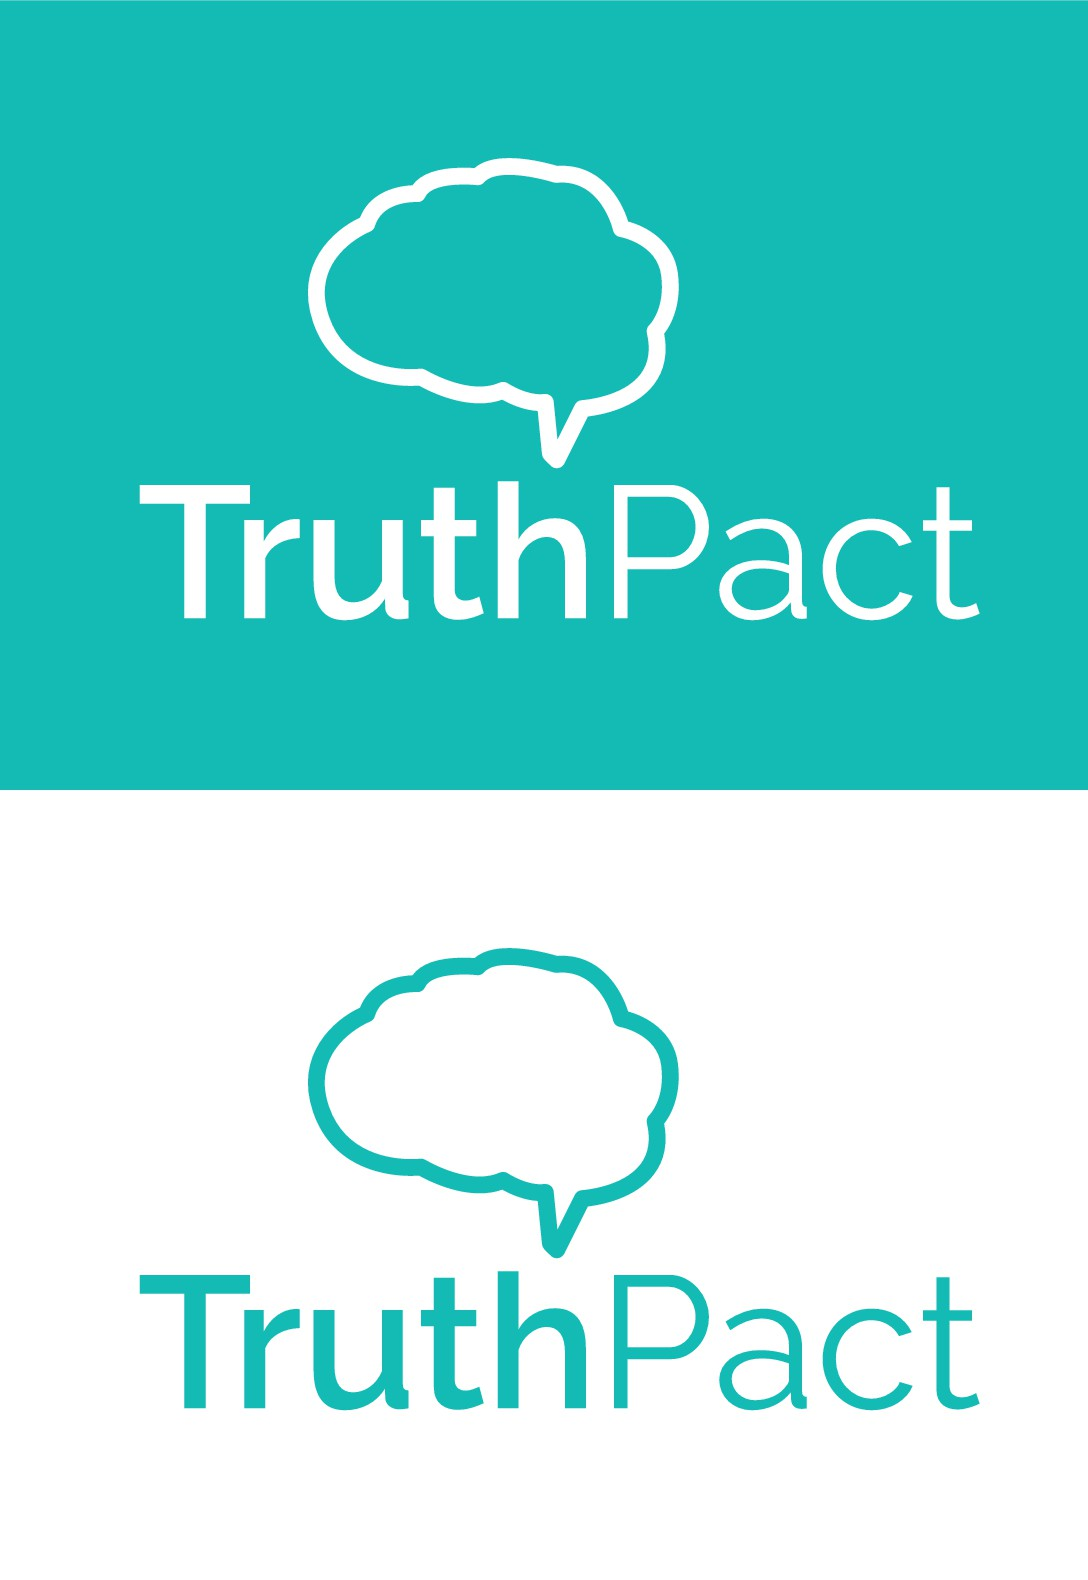 Design a logo for Truth Pact - displaying a committement to both truth and honesty